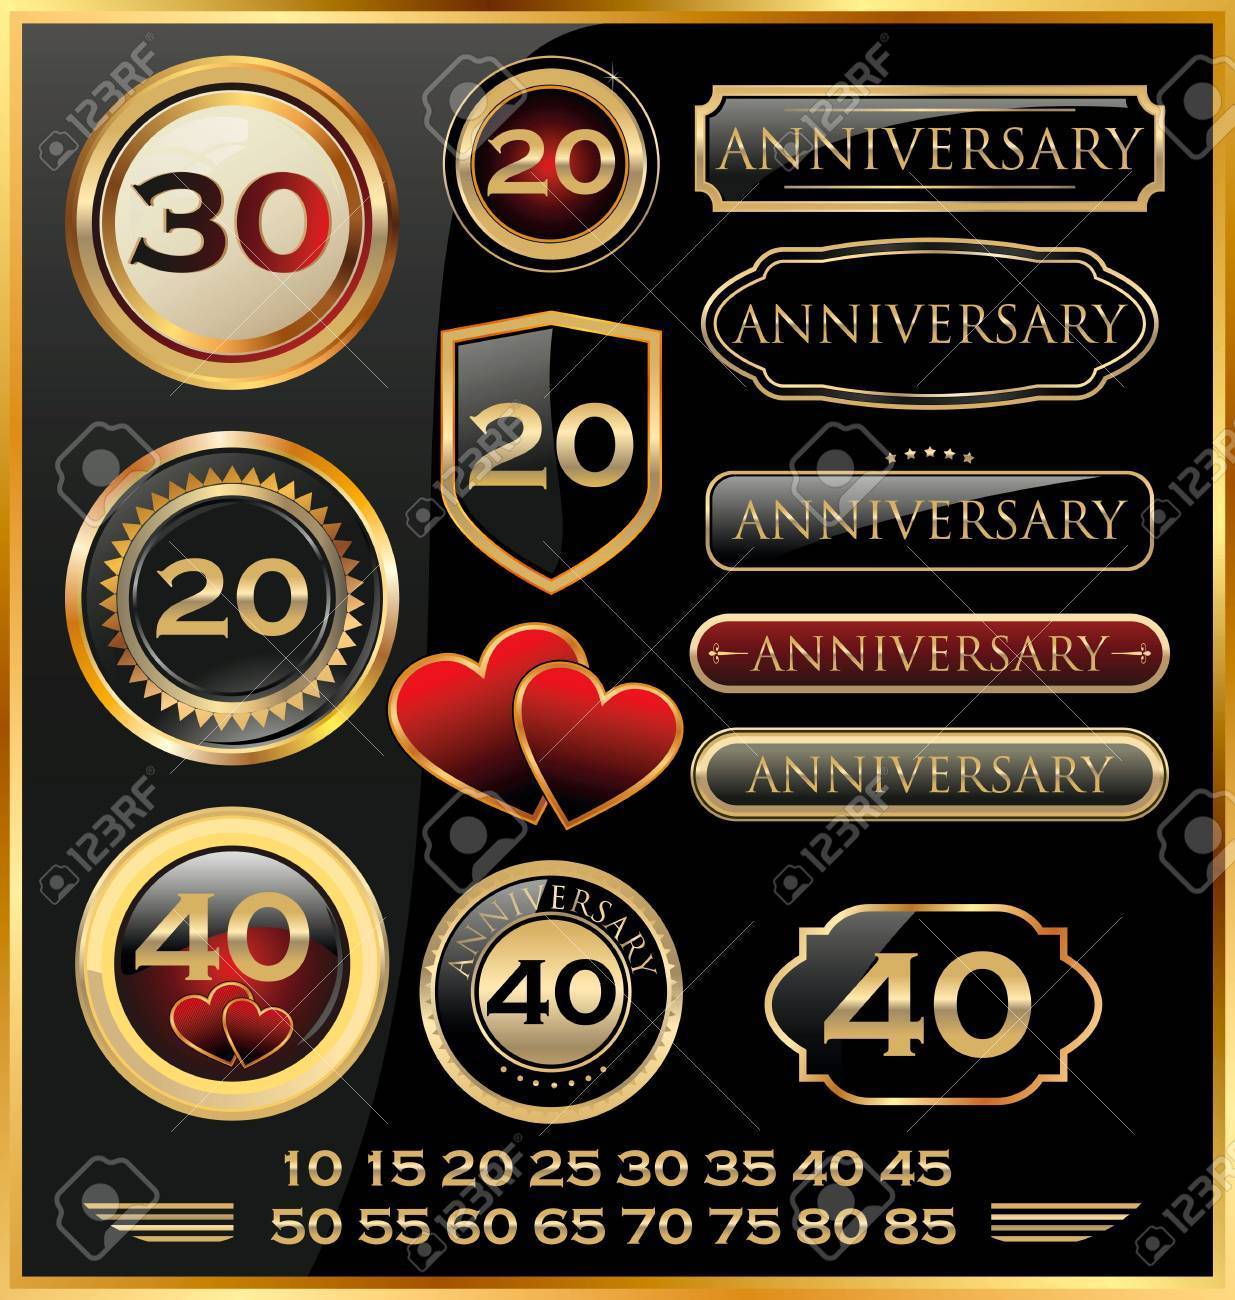 Retro style anniversary sign collection Stock Vector - 19566513